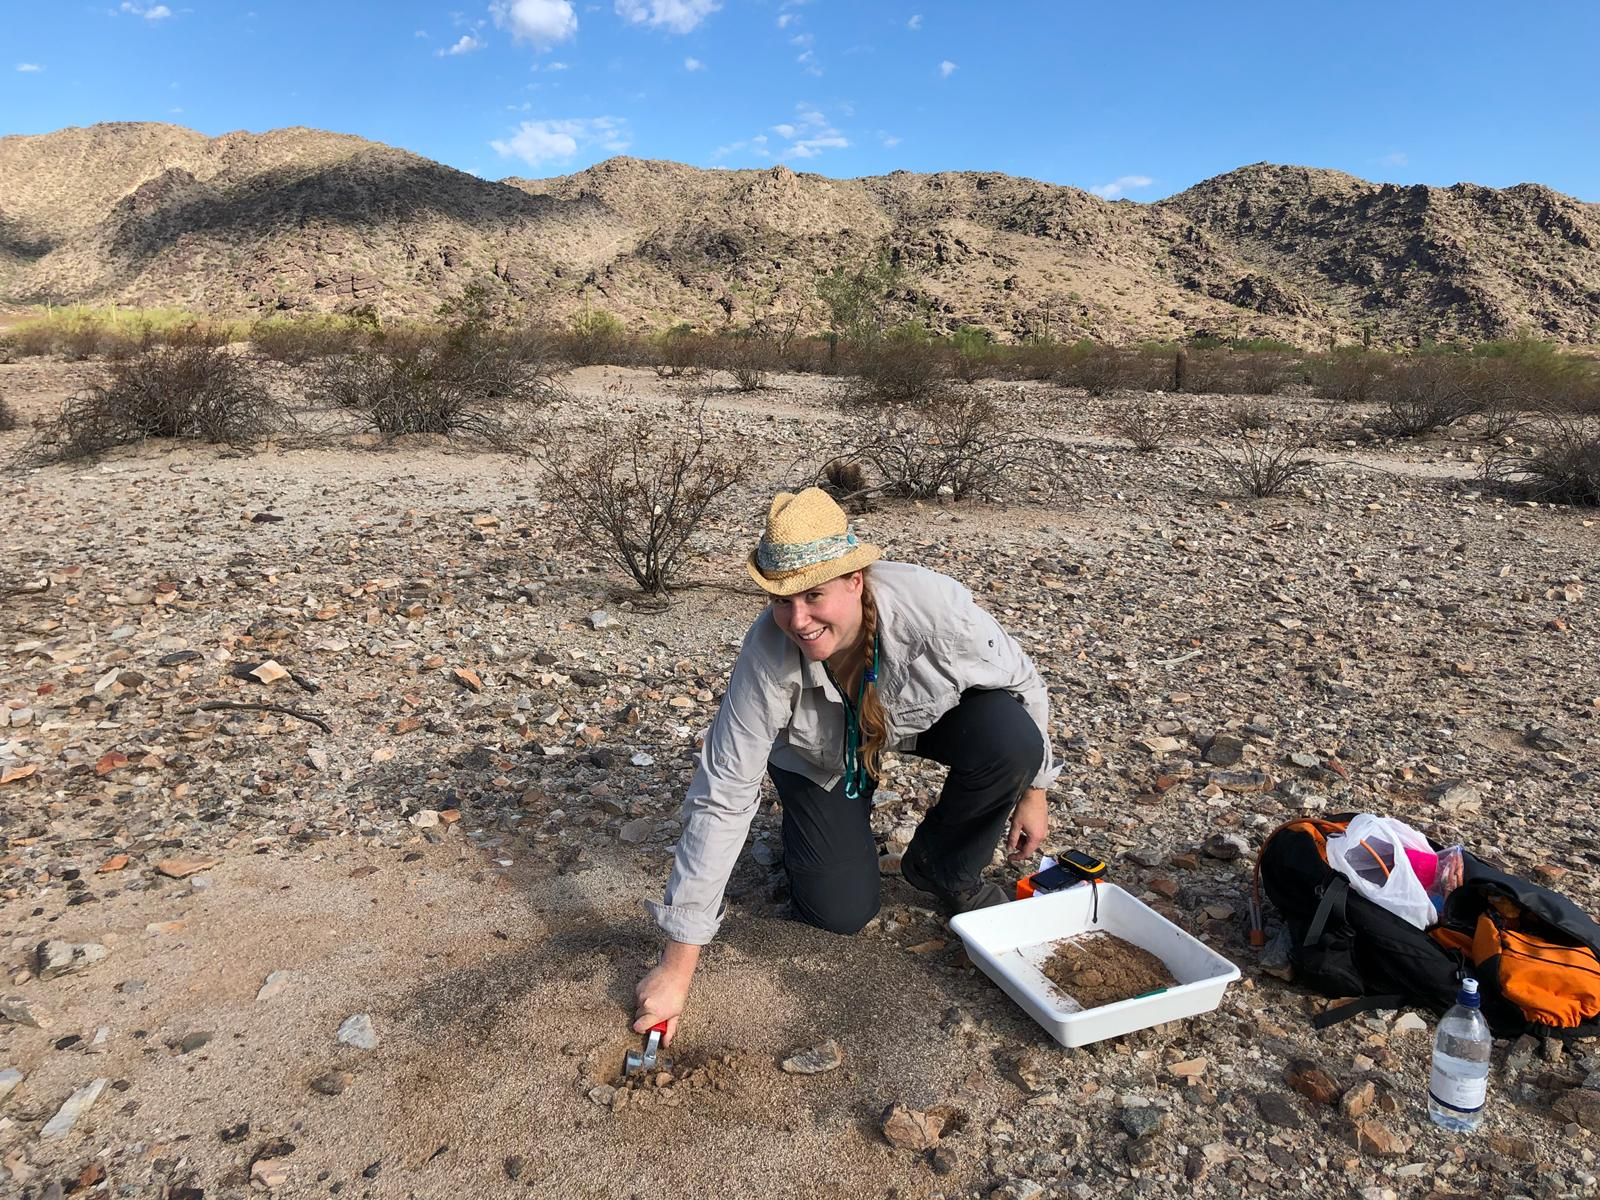 sampling ants in Arizona desert